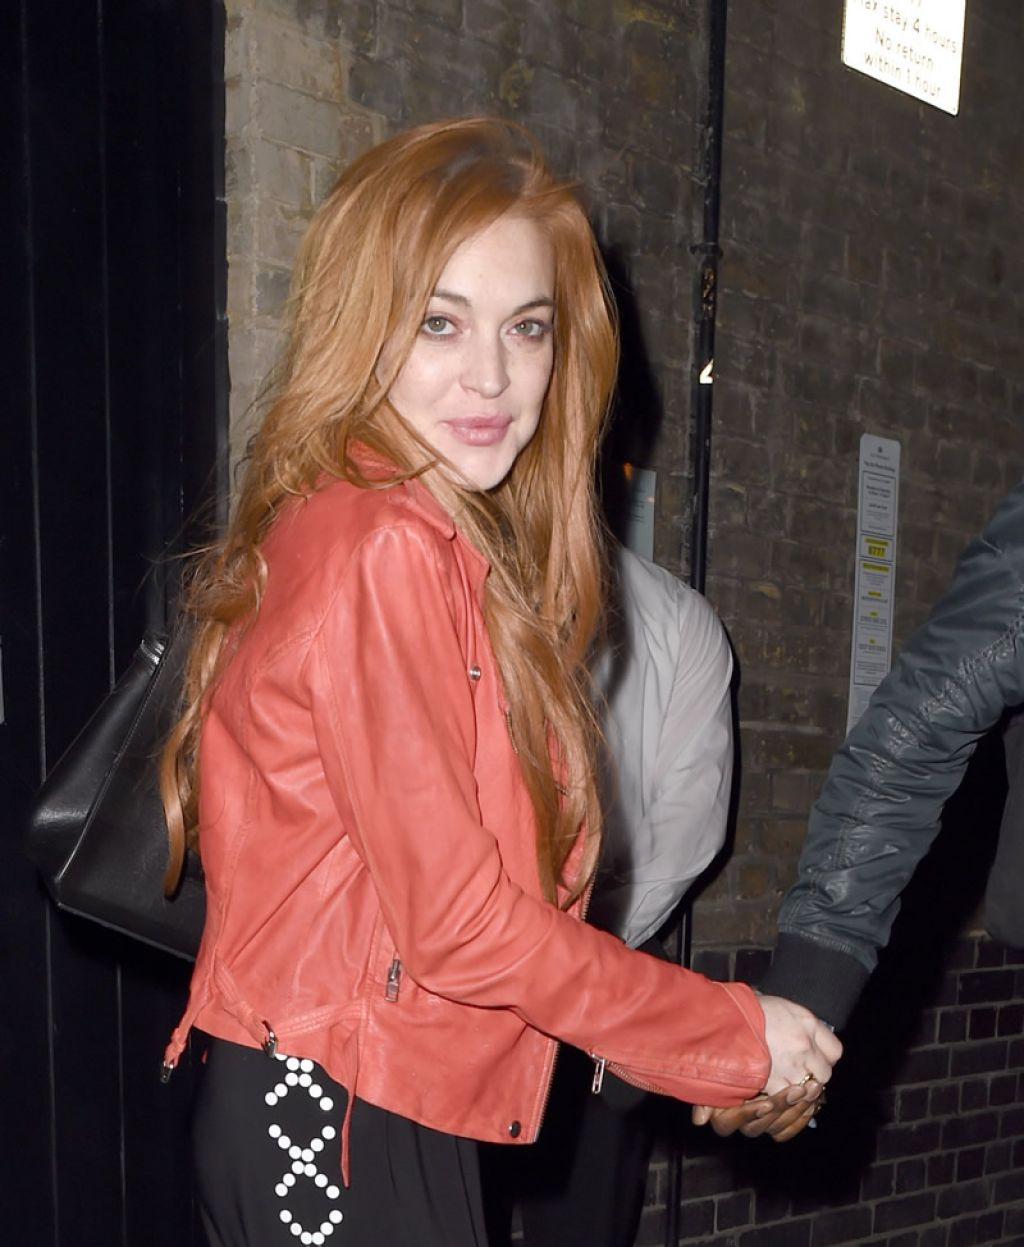 lindsay lohan dating 2014 Cannes, france – may 21: lindsay lohan attends the vip room during the  67th annual cannes film festival on may 21, 2014 in cannes,.